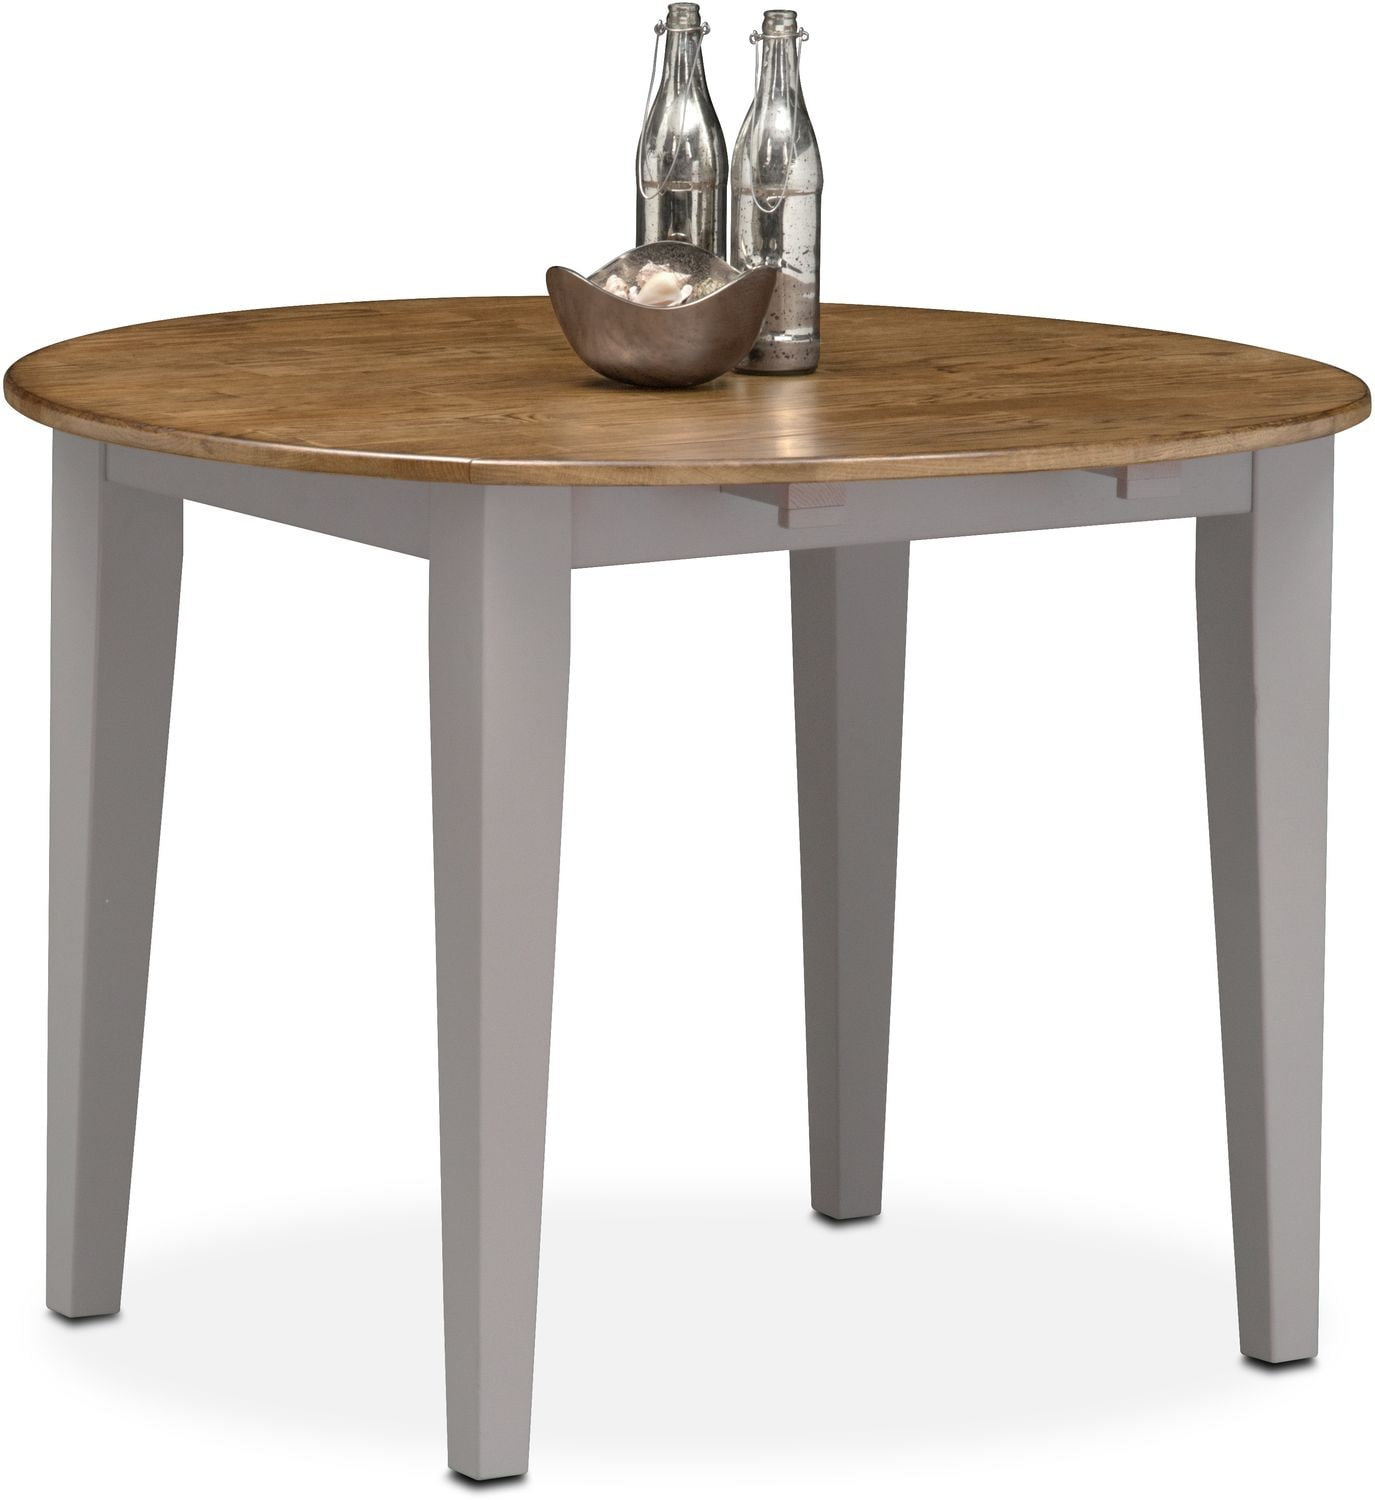 Dining Room Furniture   Nantucket Drop Leaf Table   Oak And Gray